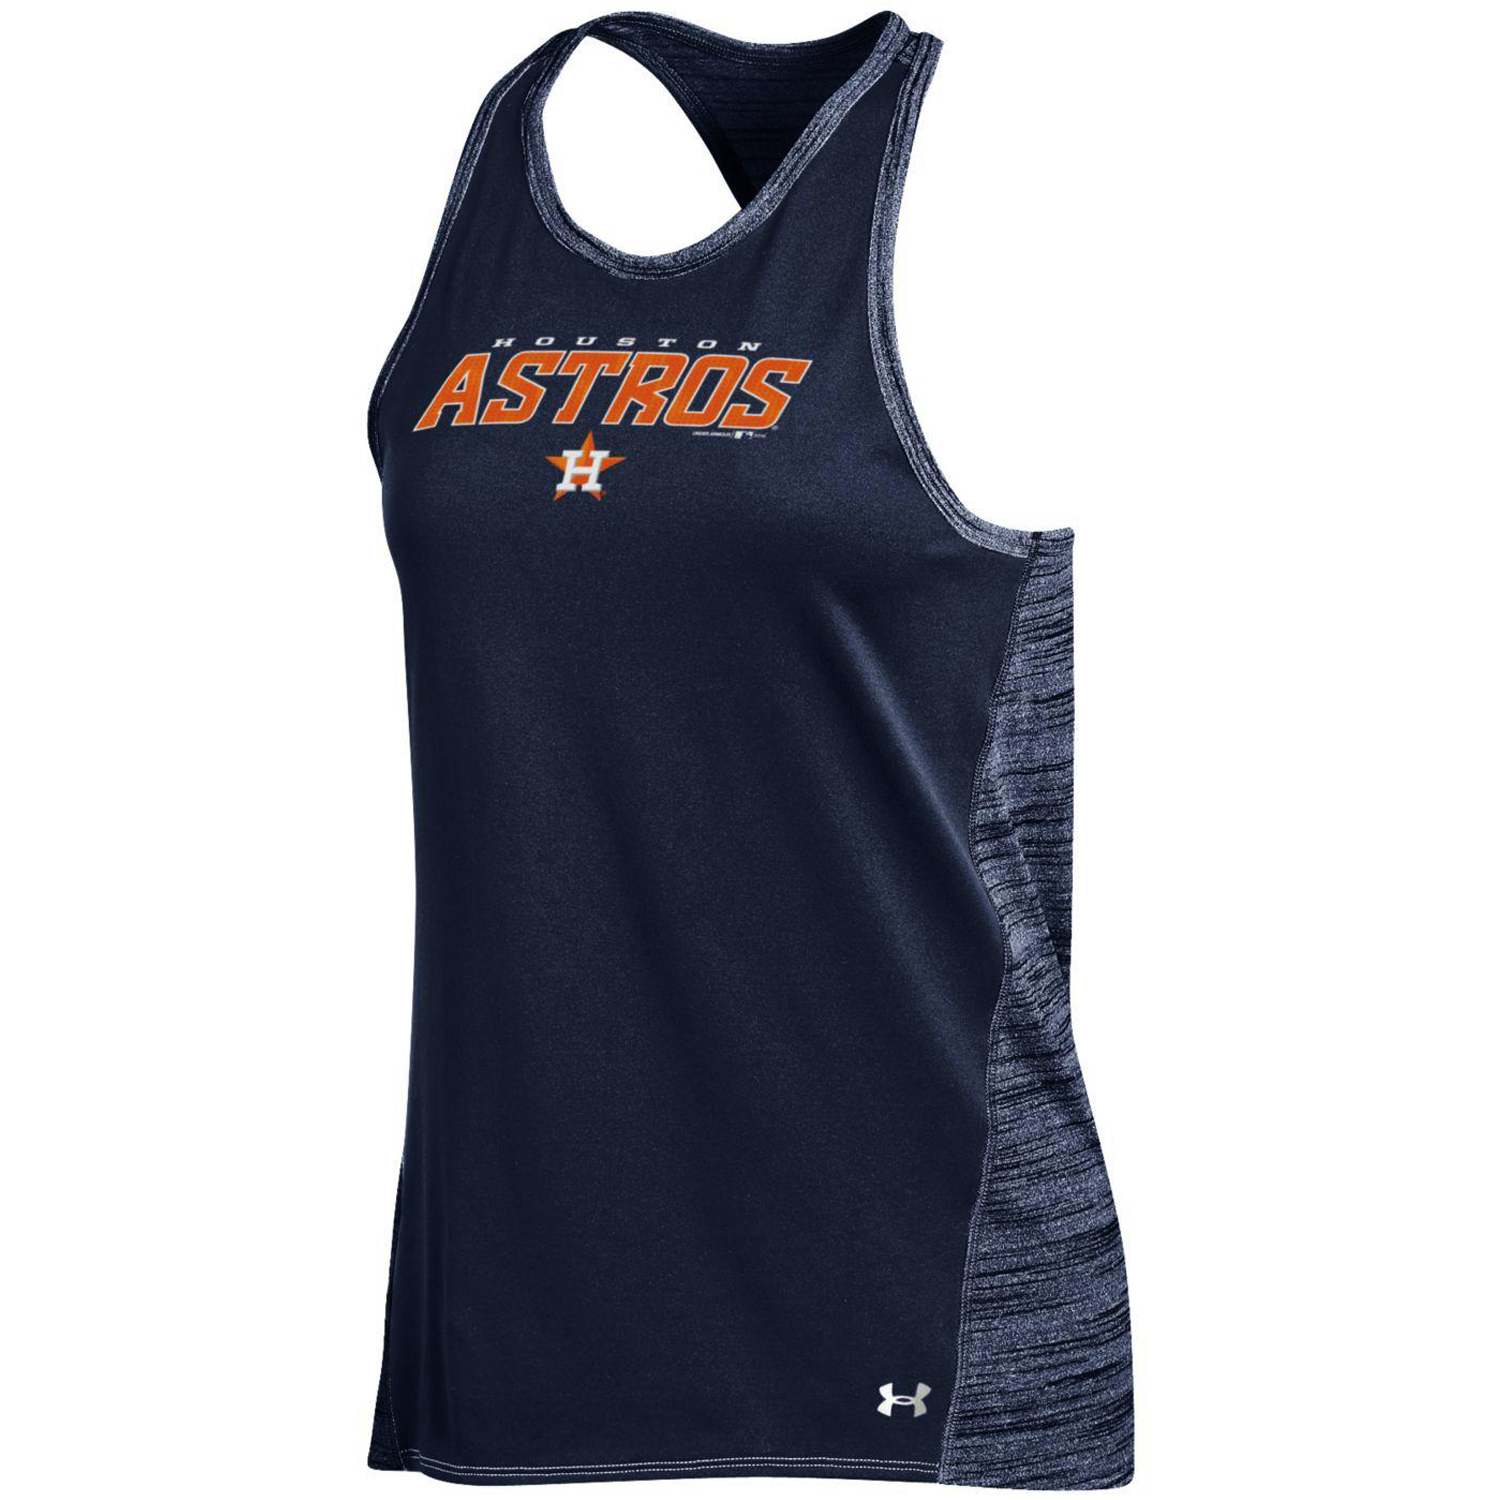 Houston Astros Under Armour Women's Performance Tank Top Navy by Gear For Sports/Under Armour